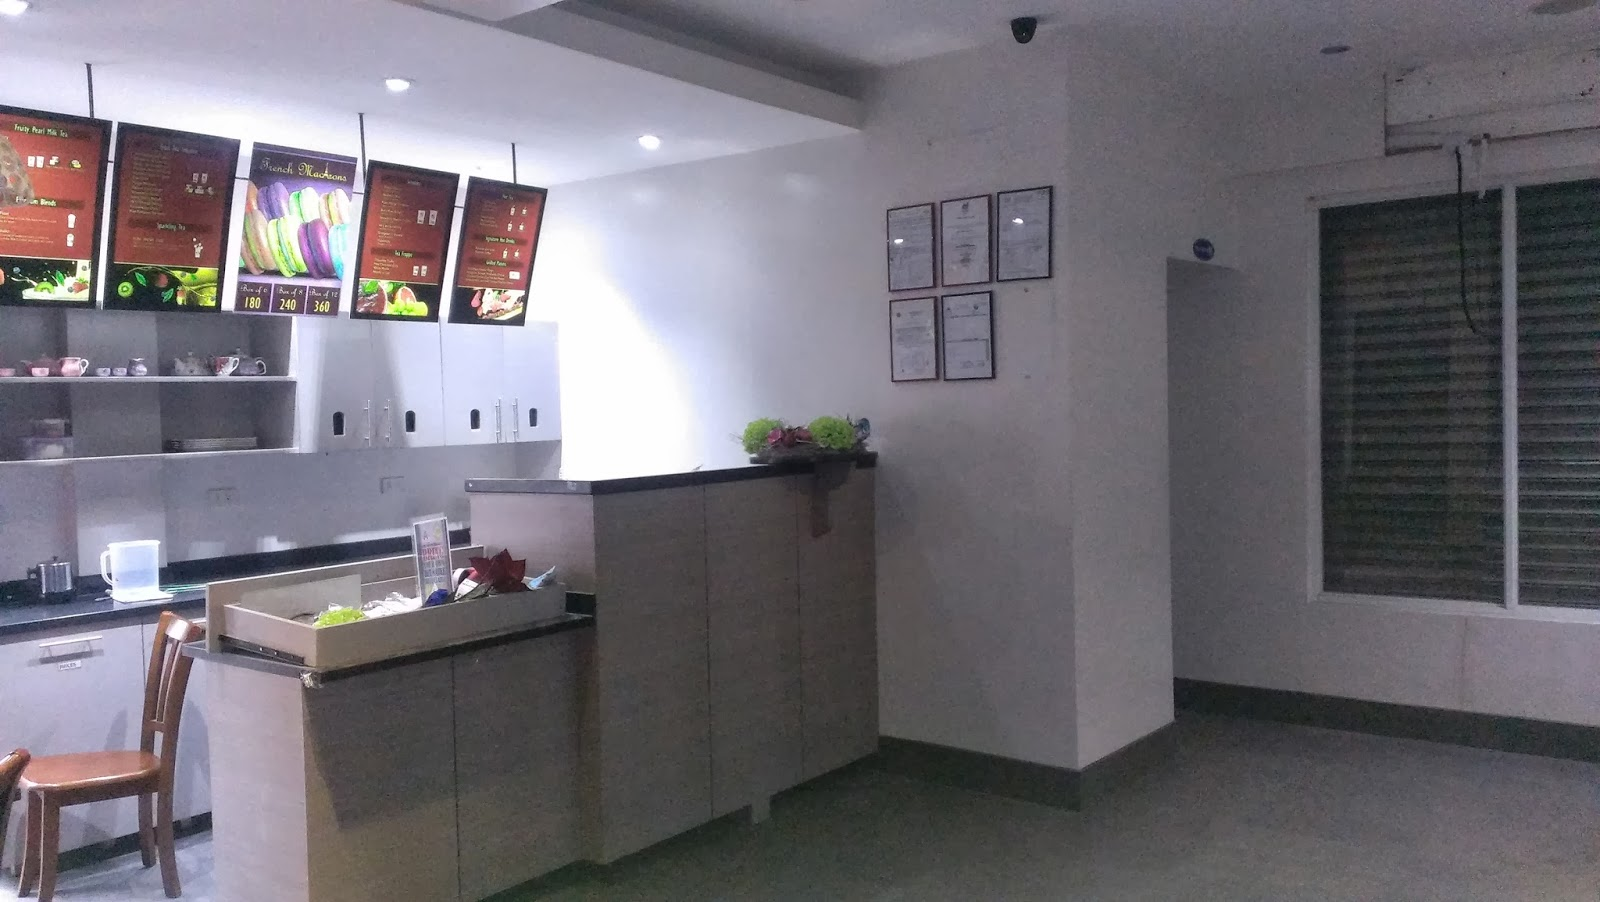 Commercial space for rent along kamuning road quezon city commercial properties for rent and - Small commercial rental space photos ...